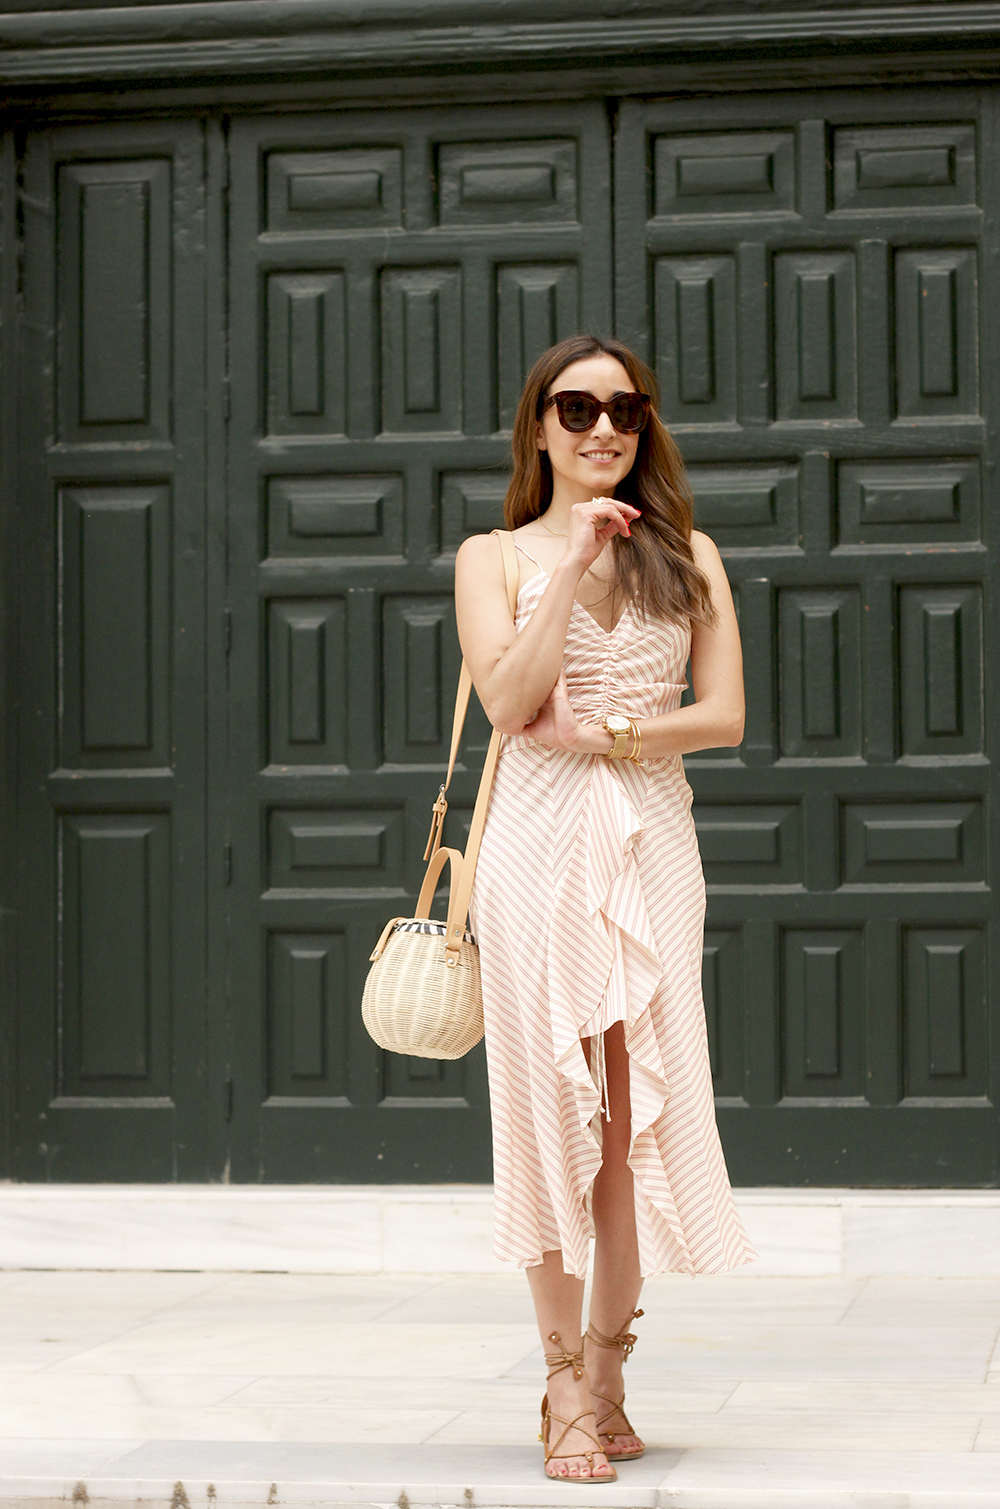 Perfect dress for summer flat sandals wicker bag céline sunnies style fashion outfit01